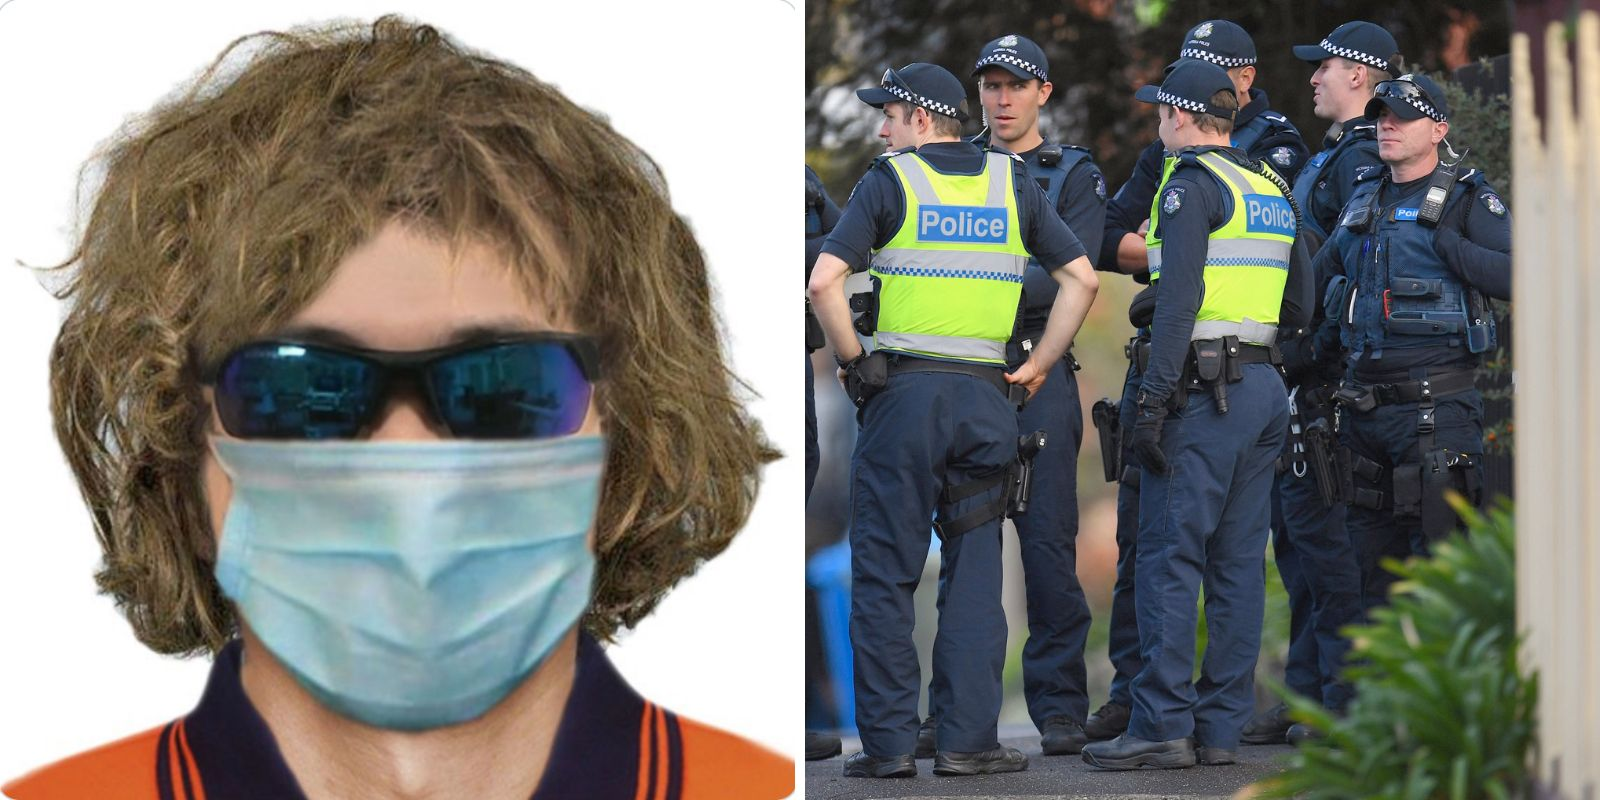 WAIT WHAT: Australian police department releases composite photo of wanted suspect wearing face mask